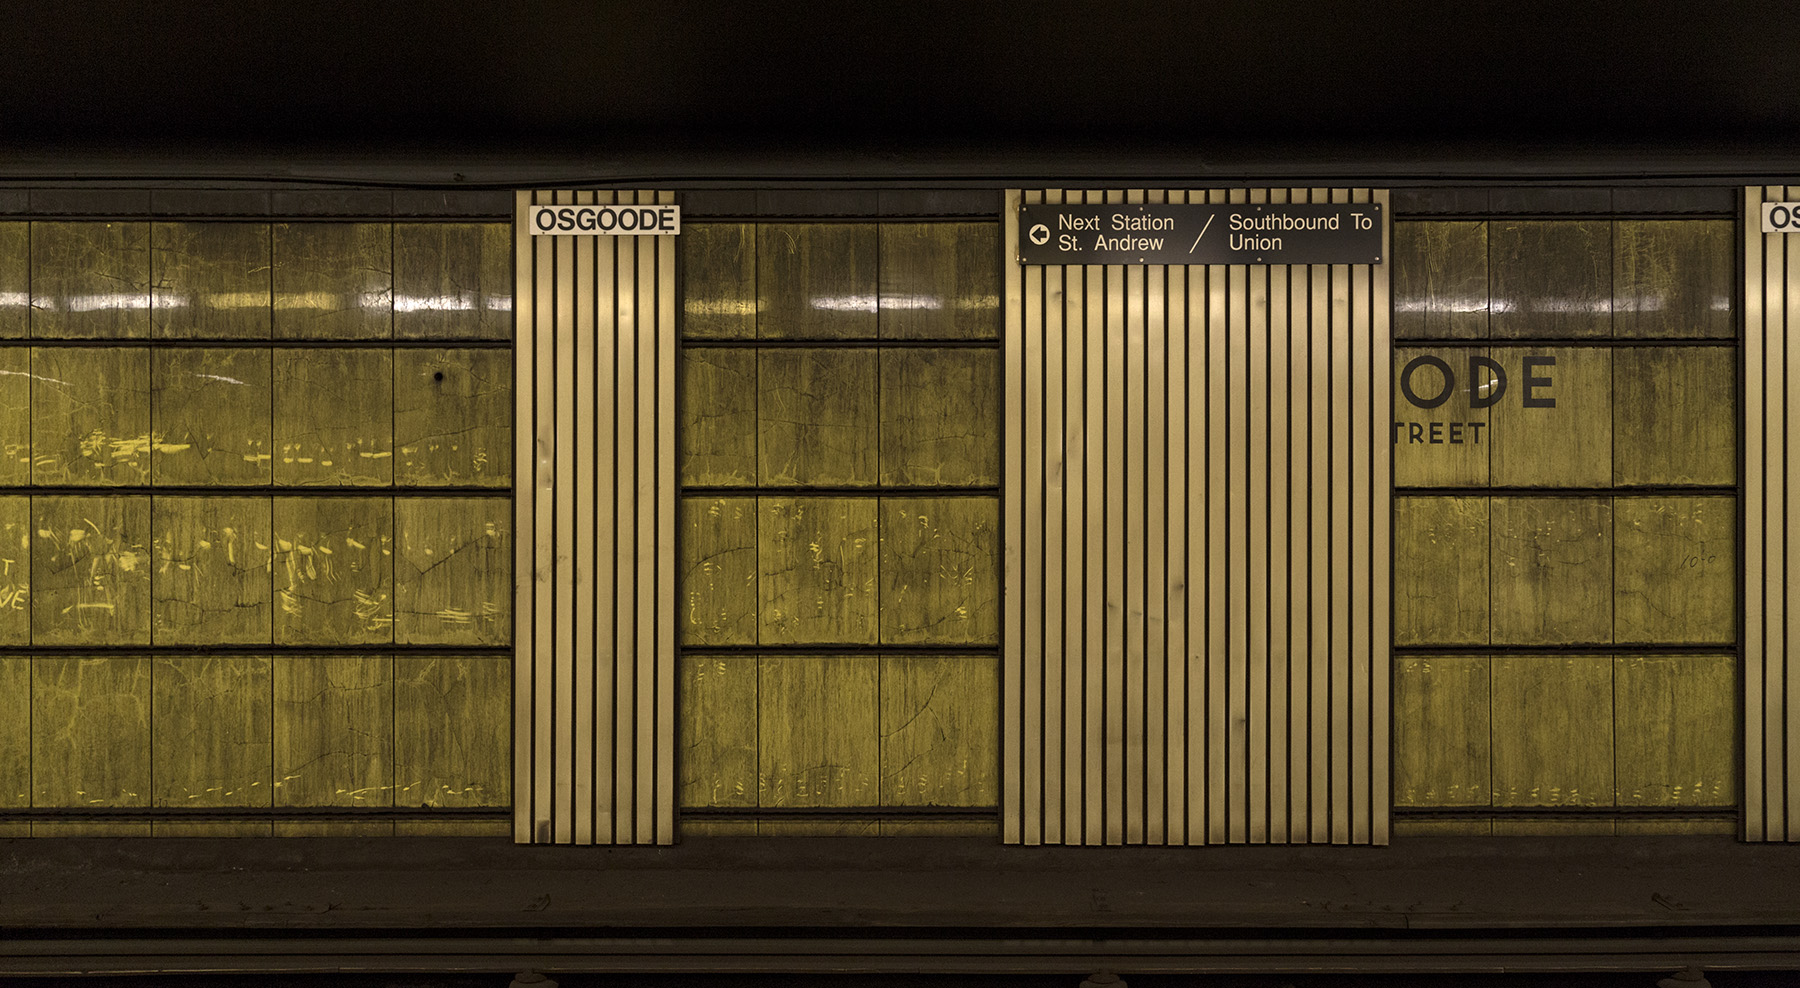 20151207. Osgoode subway station's removed siding reveals the or